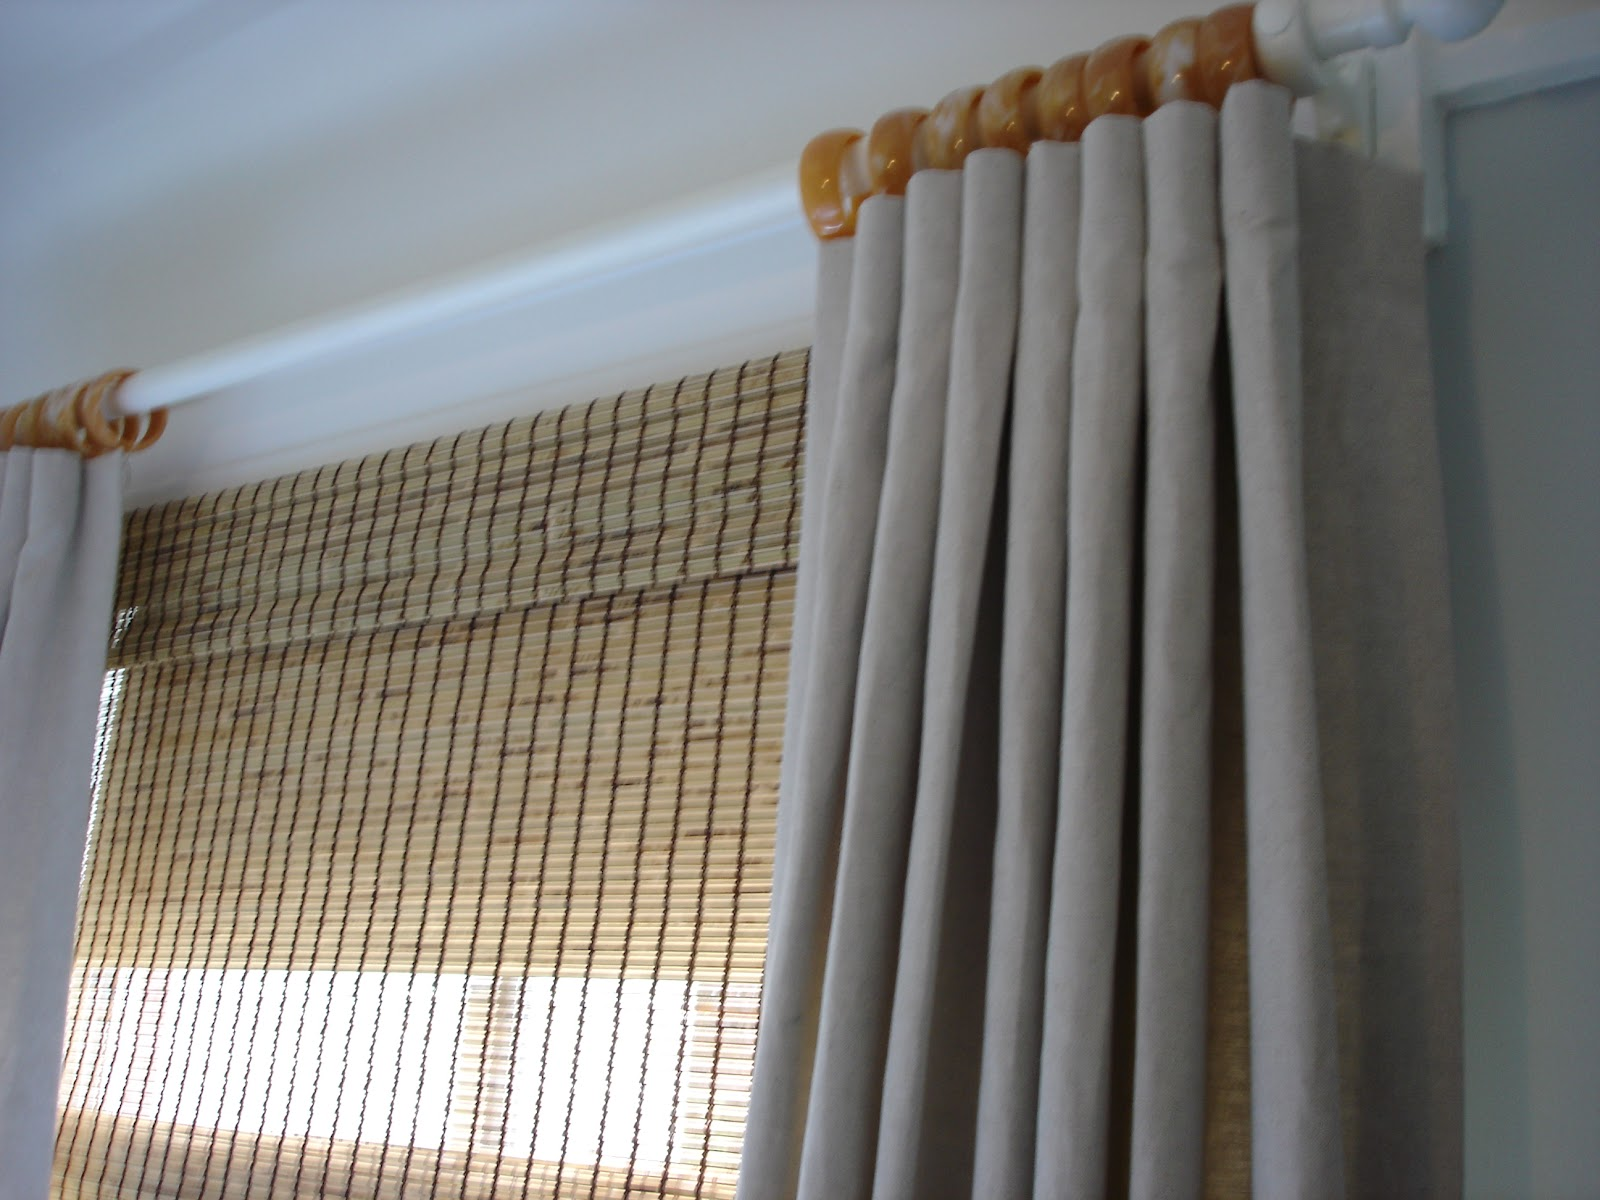 Pleated Curtains For Curtain Box : Thoughts and ideas: Heading for curtains